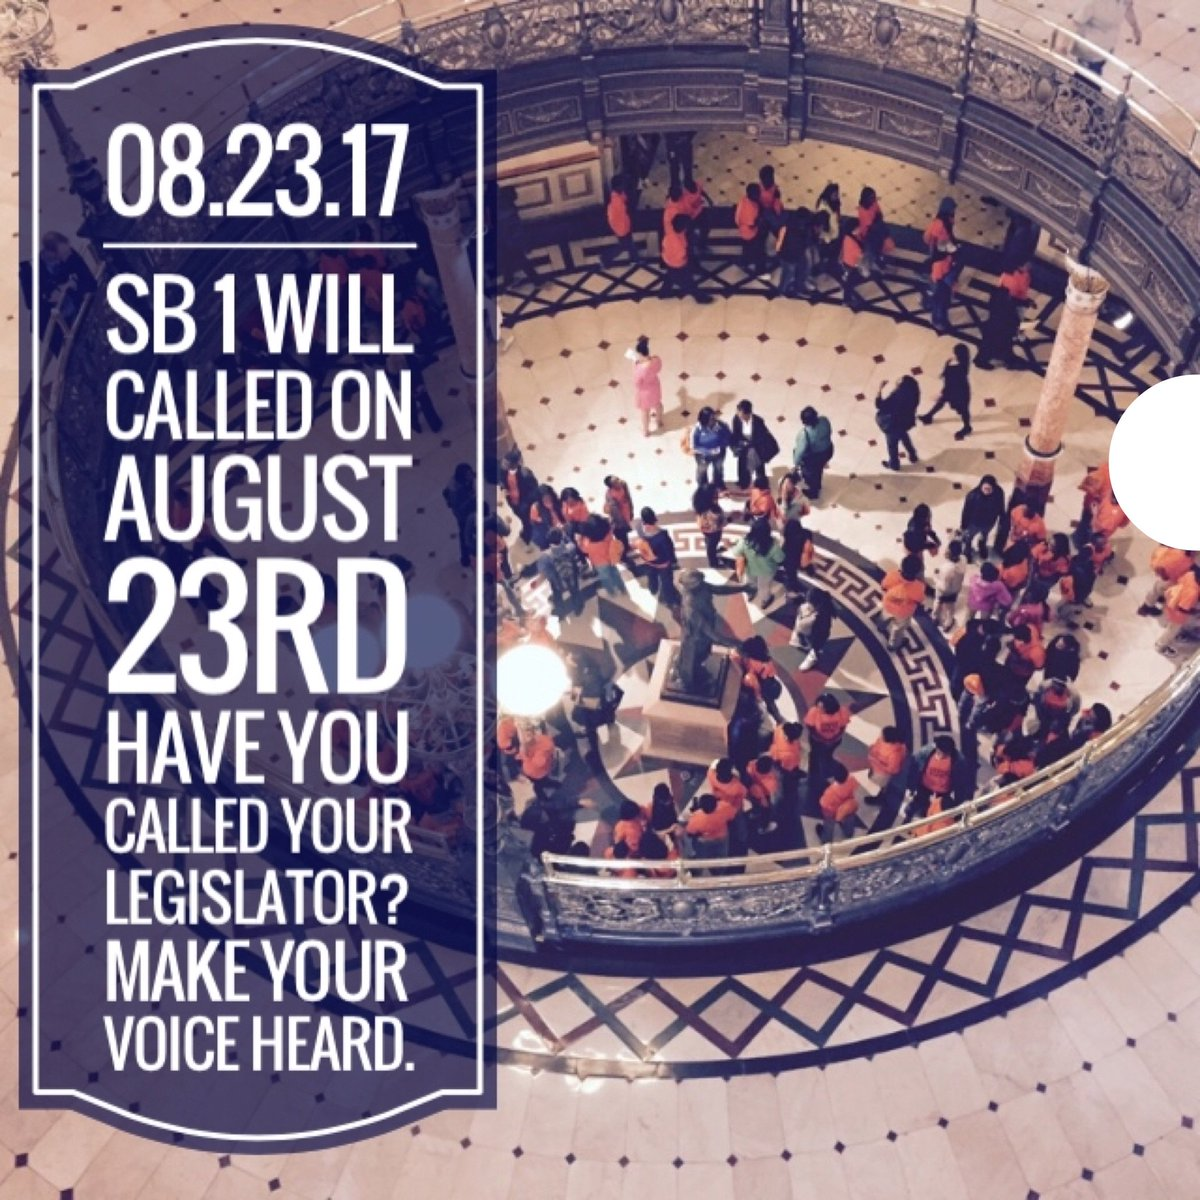 test Twitter Media - Call your legislator and make your voice heard! #fixtheformula #sb1 https://t.co/pV8hSCWbIT